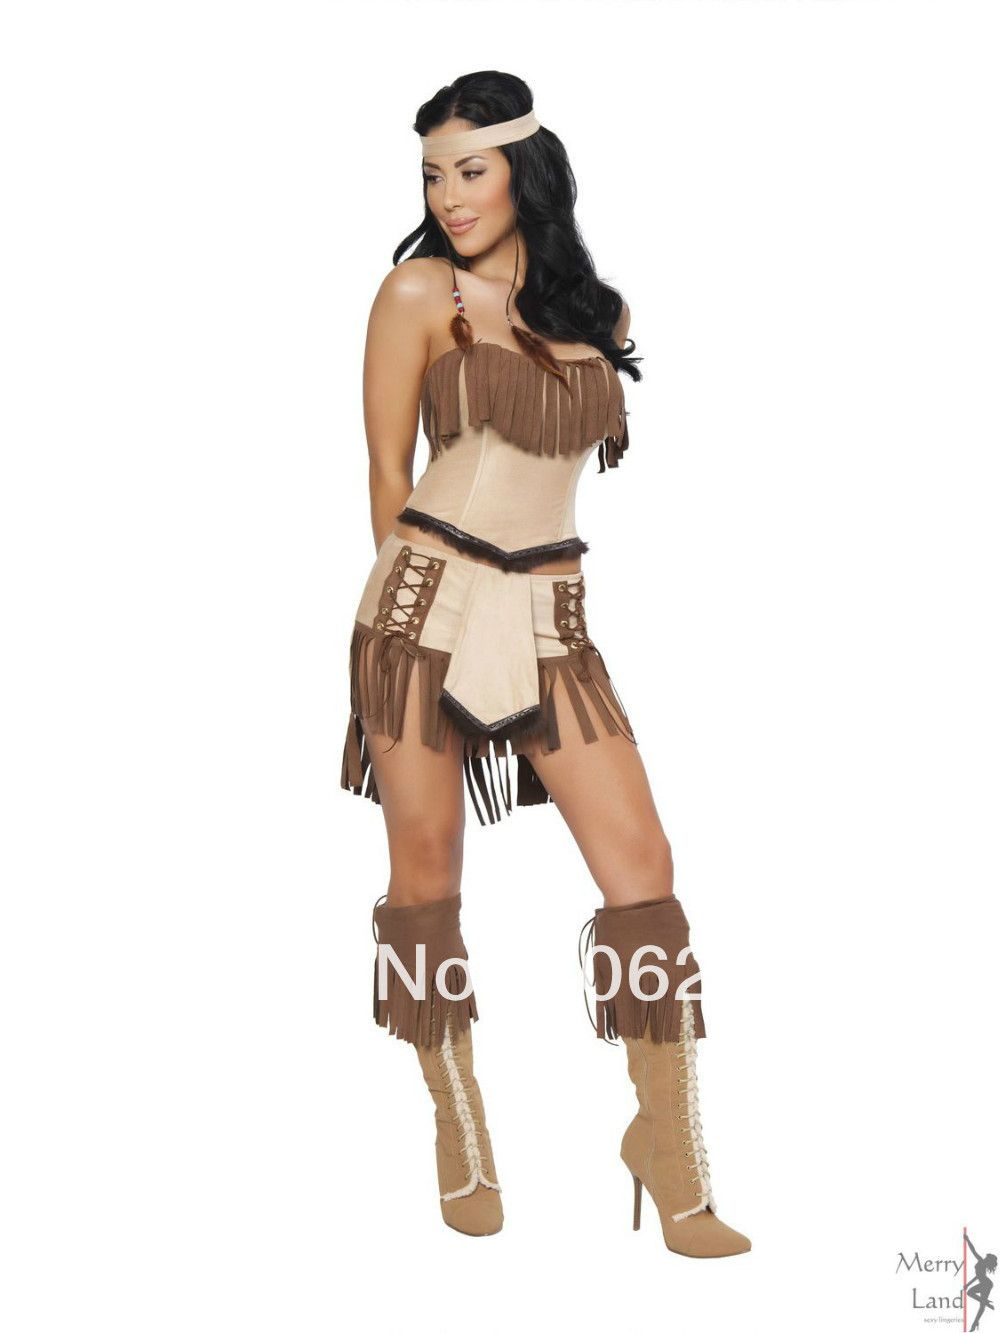 Hot native american girls cosplay sorry, that